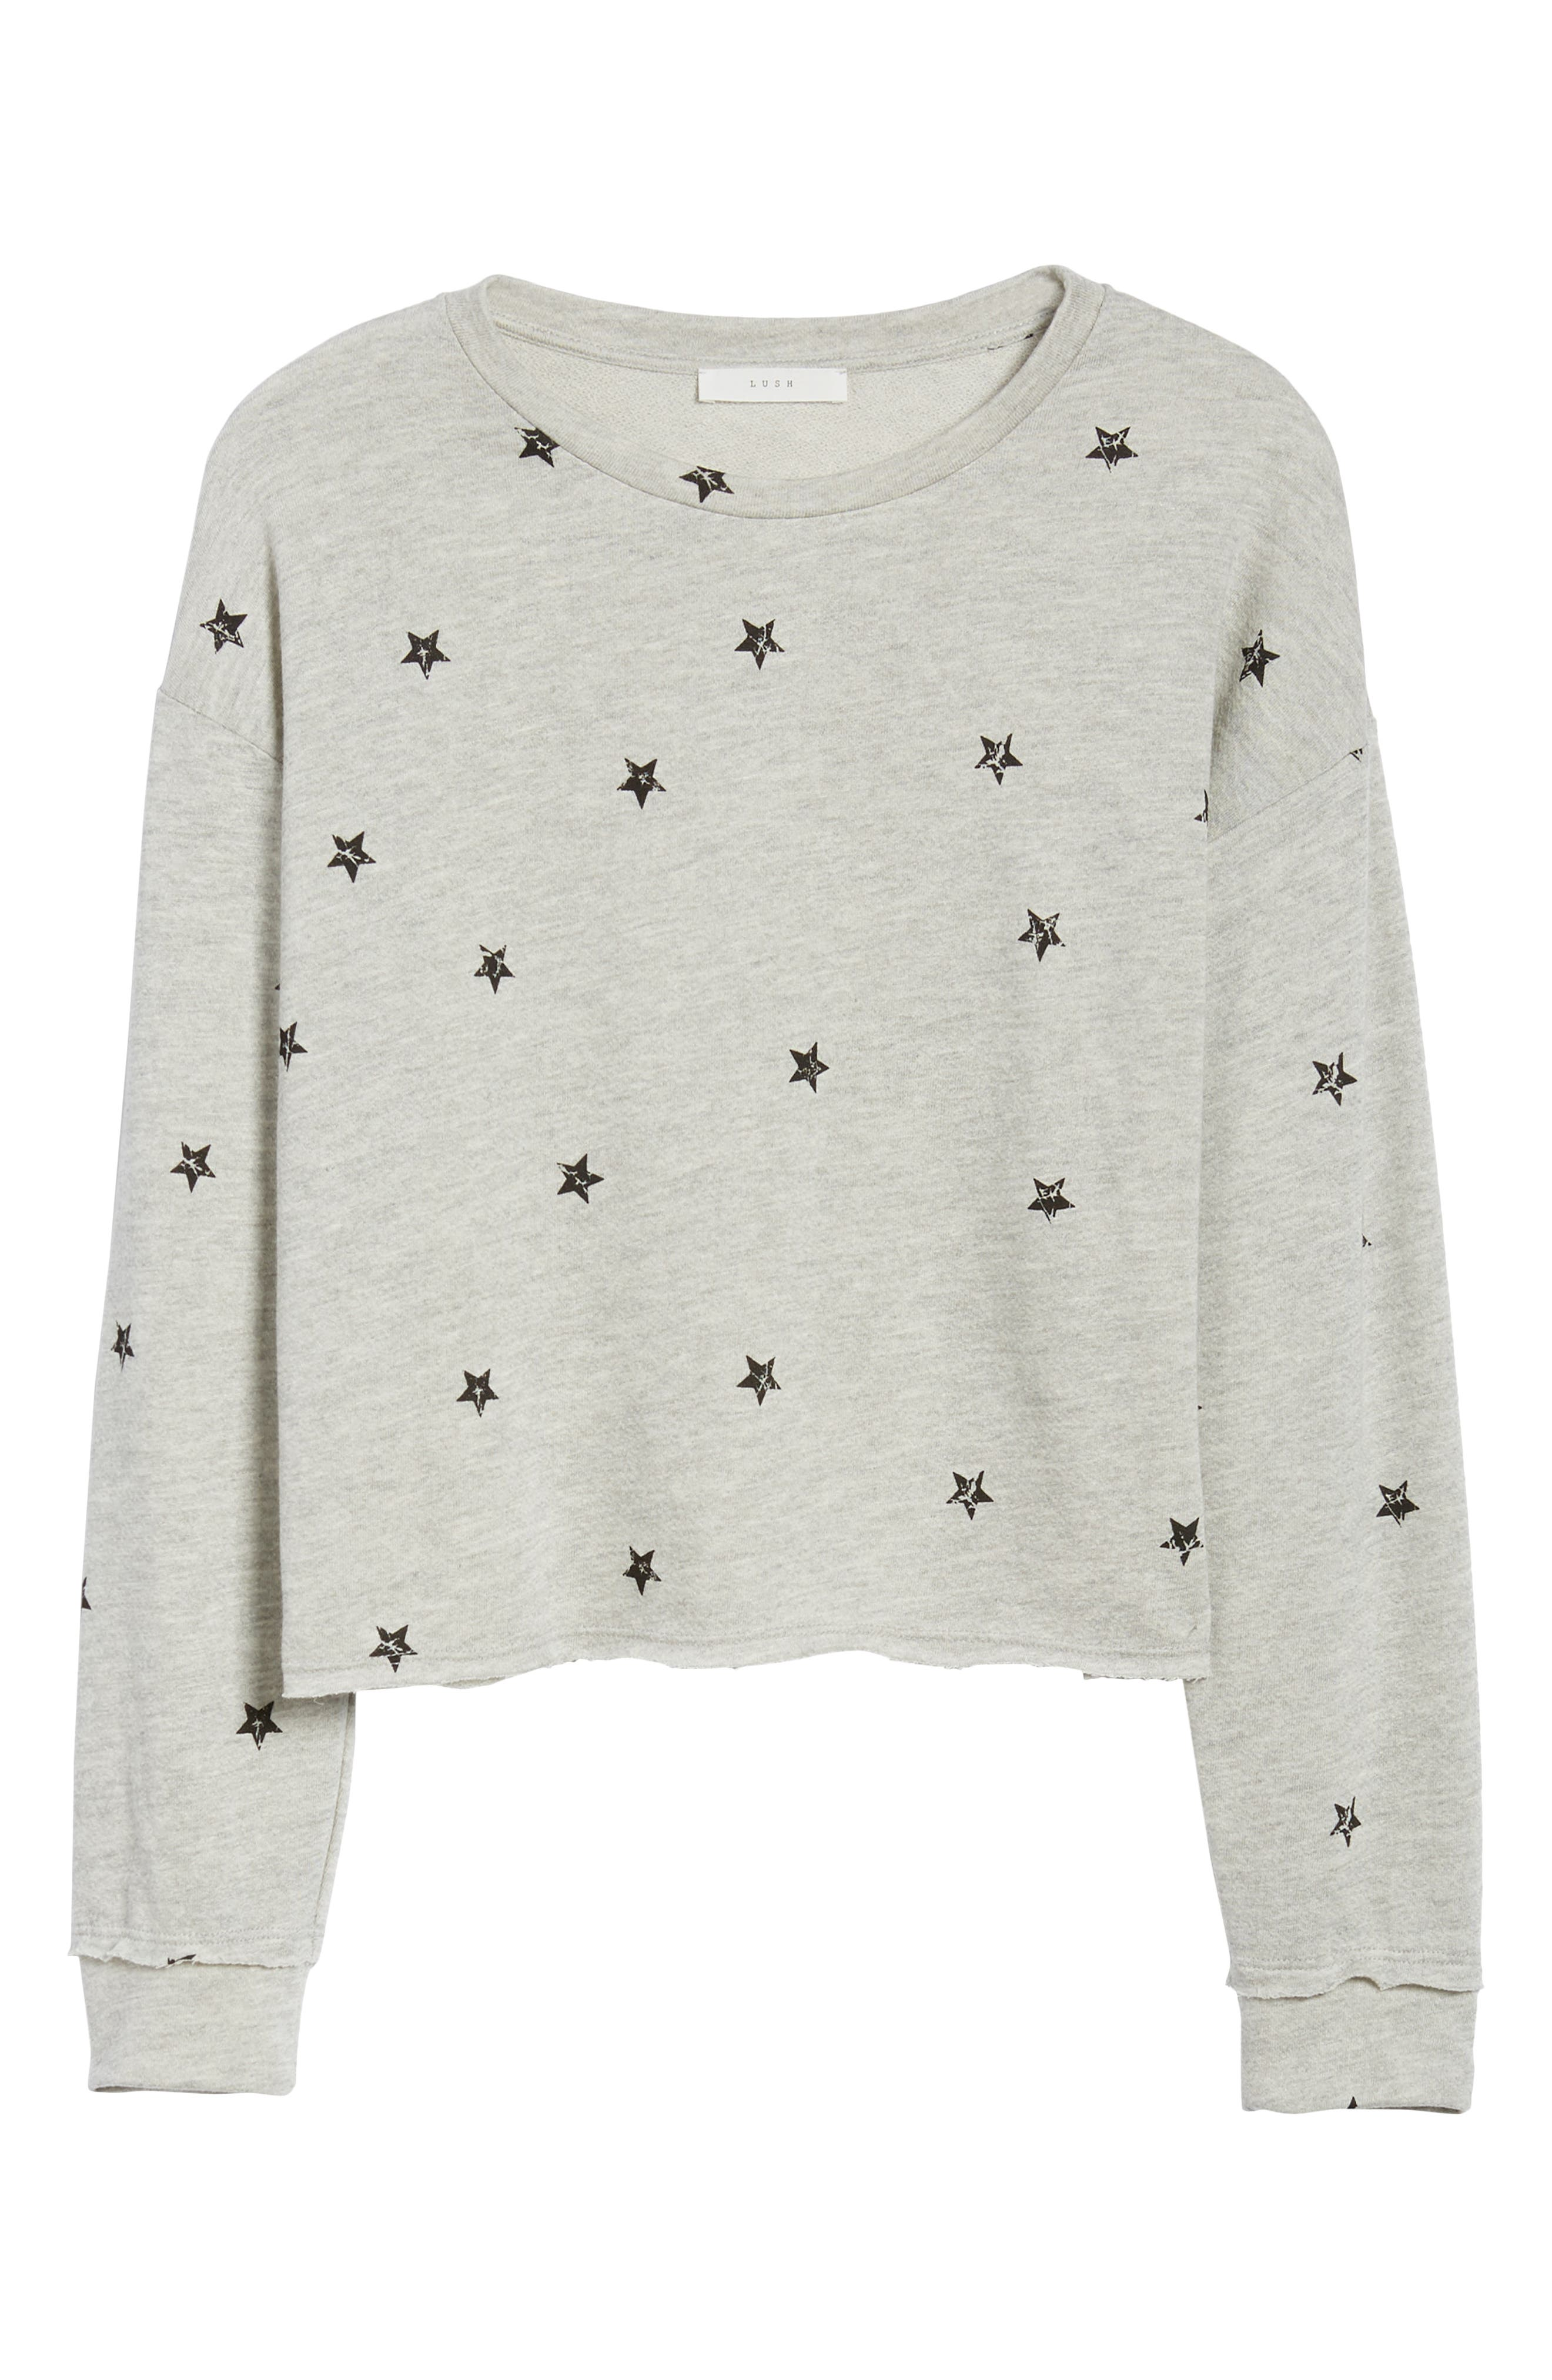 Star Print Sweatshirt,                             Alternate thumbnail 6, color,                             035